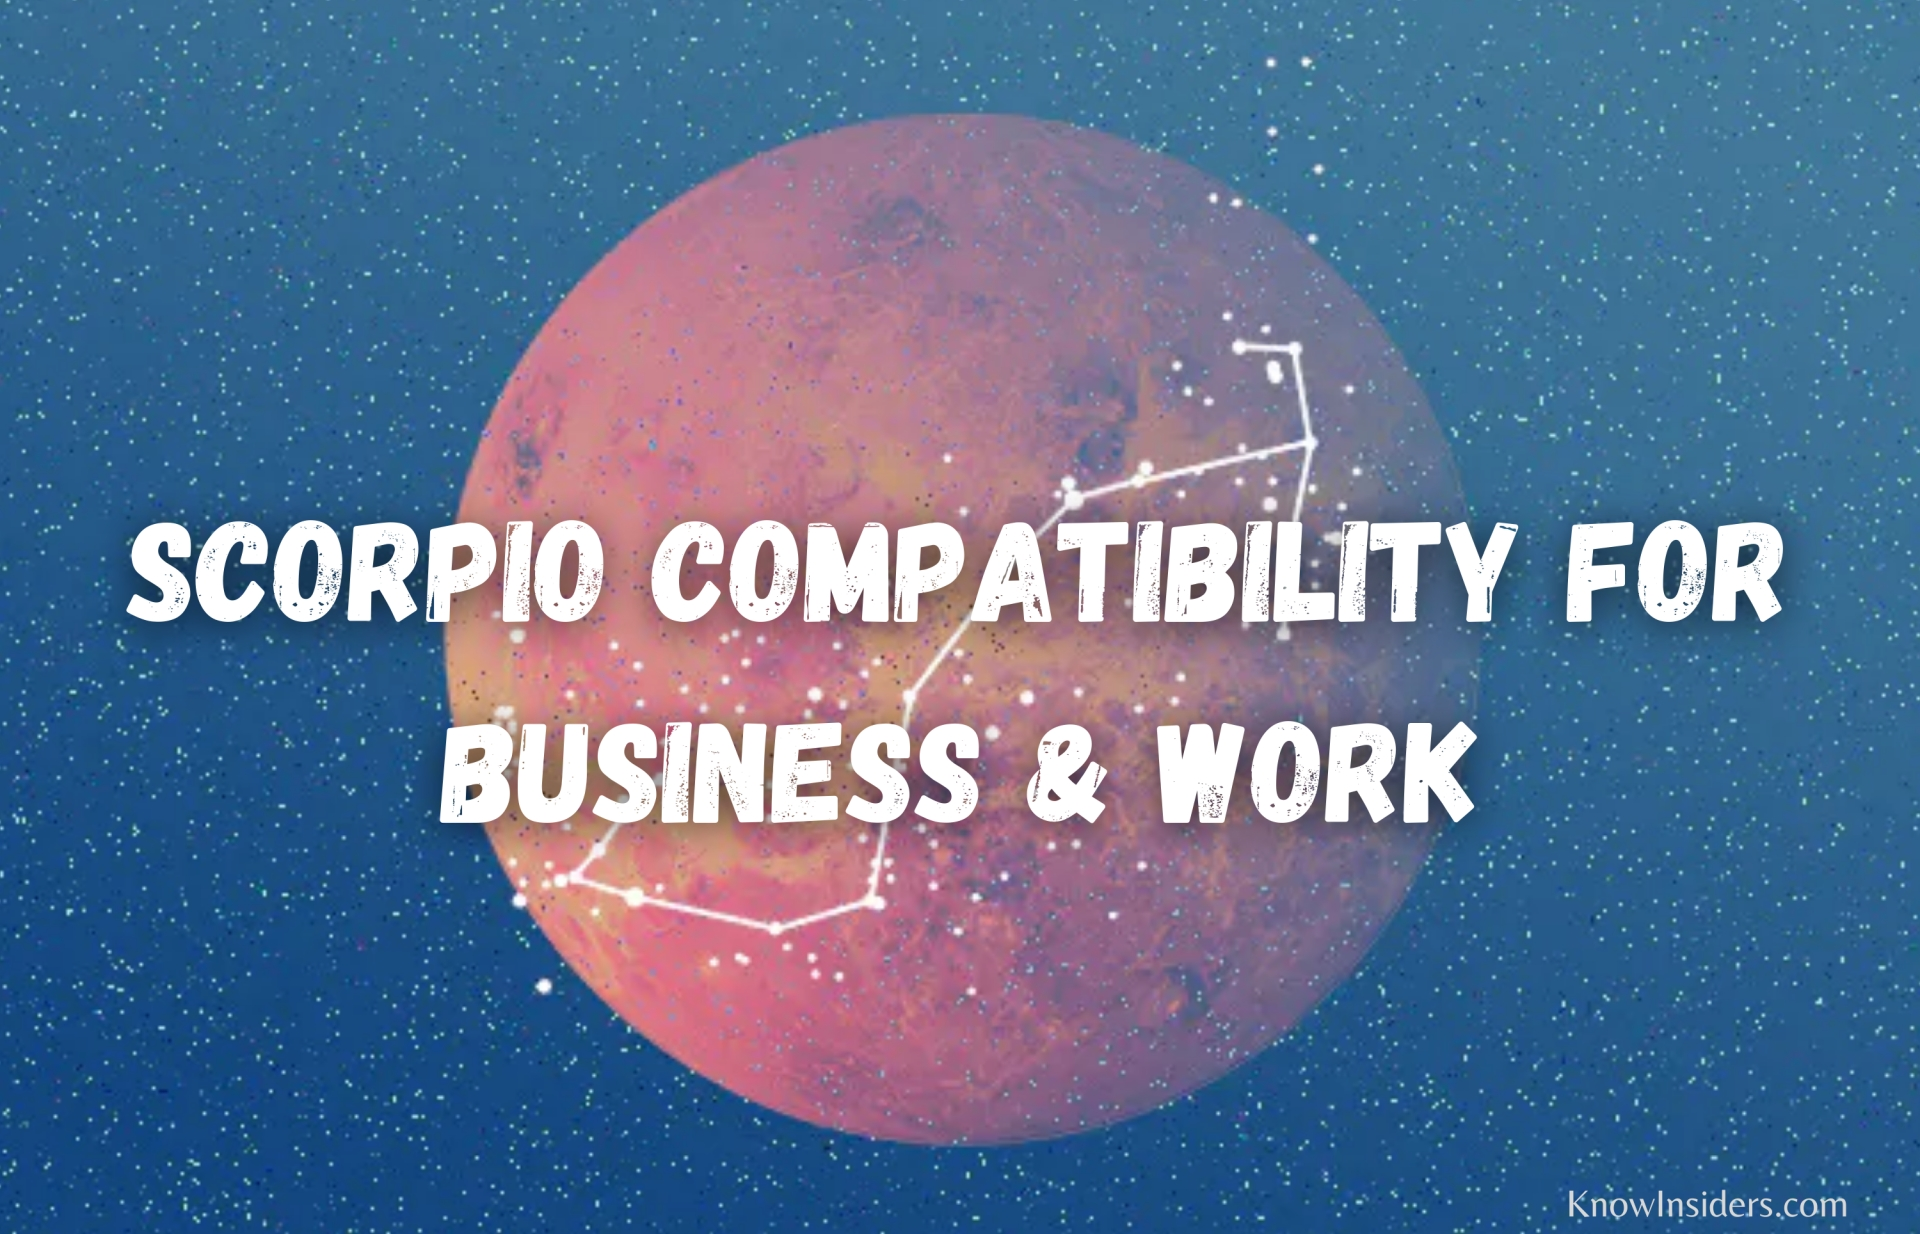 SCORPIO - Top 3 Most Compatible Zodiac Signs in Business & Work